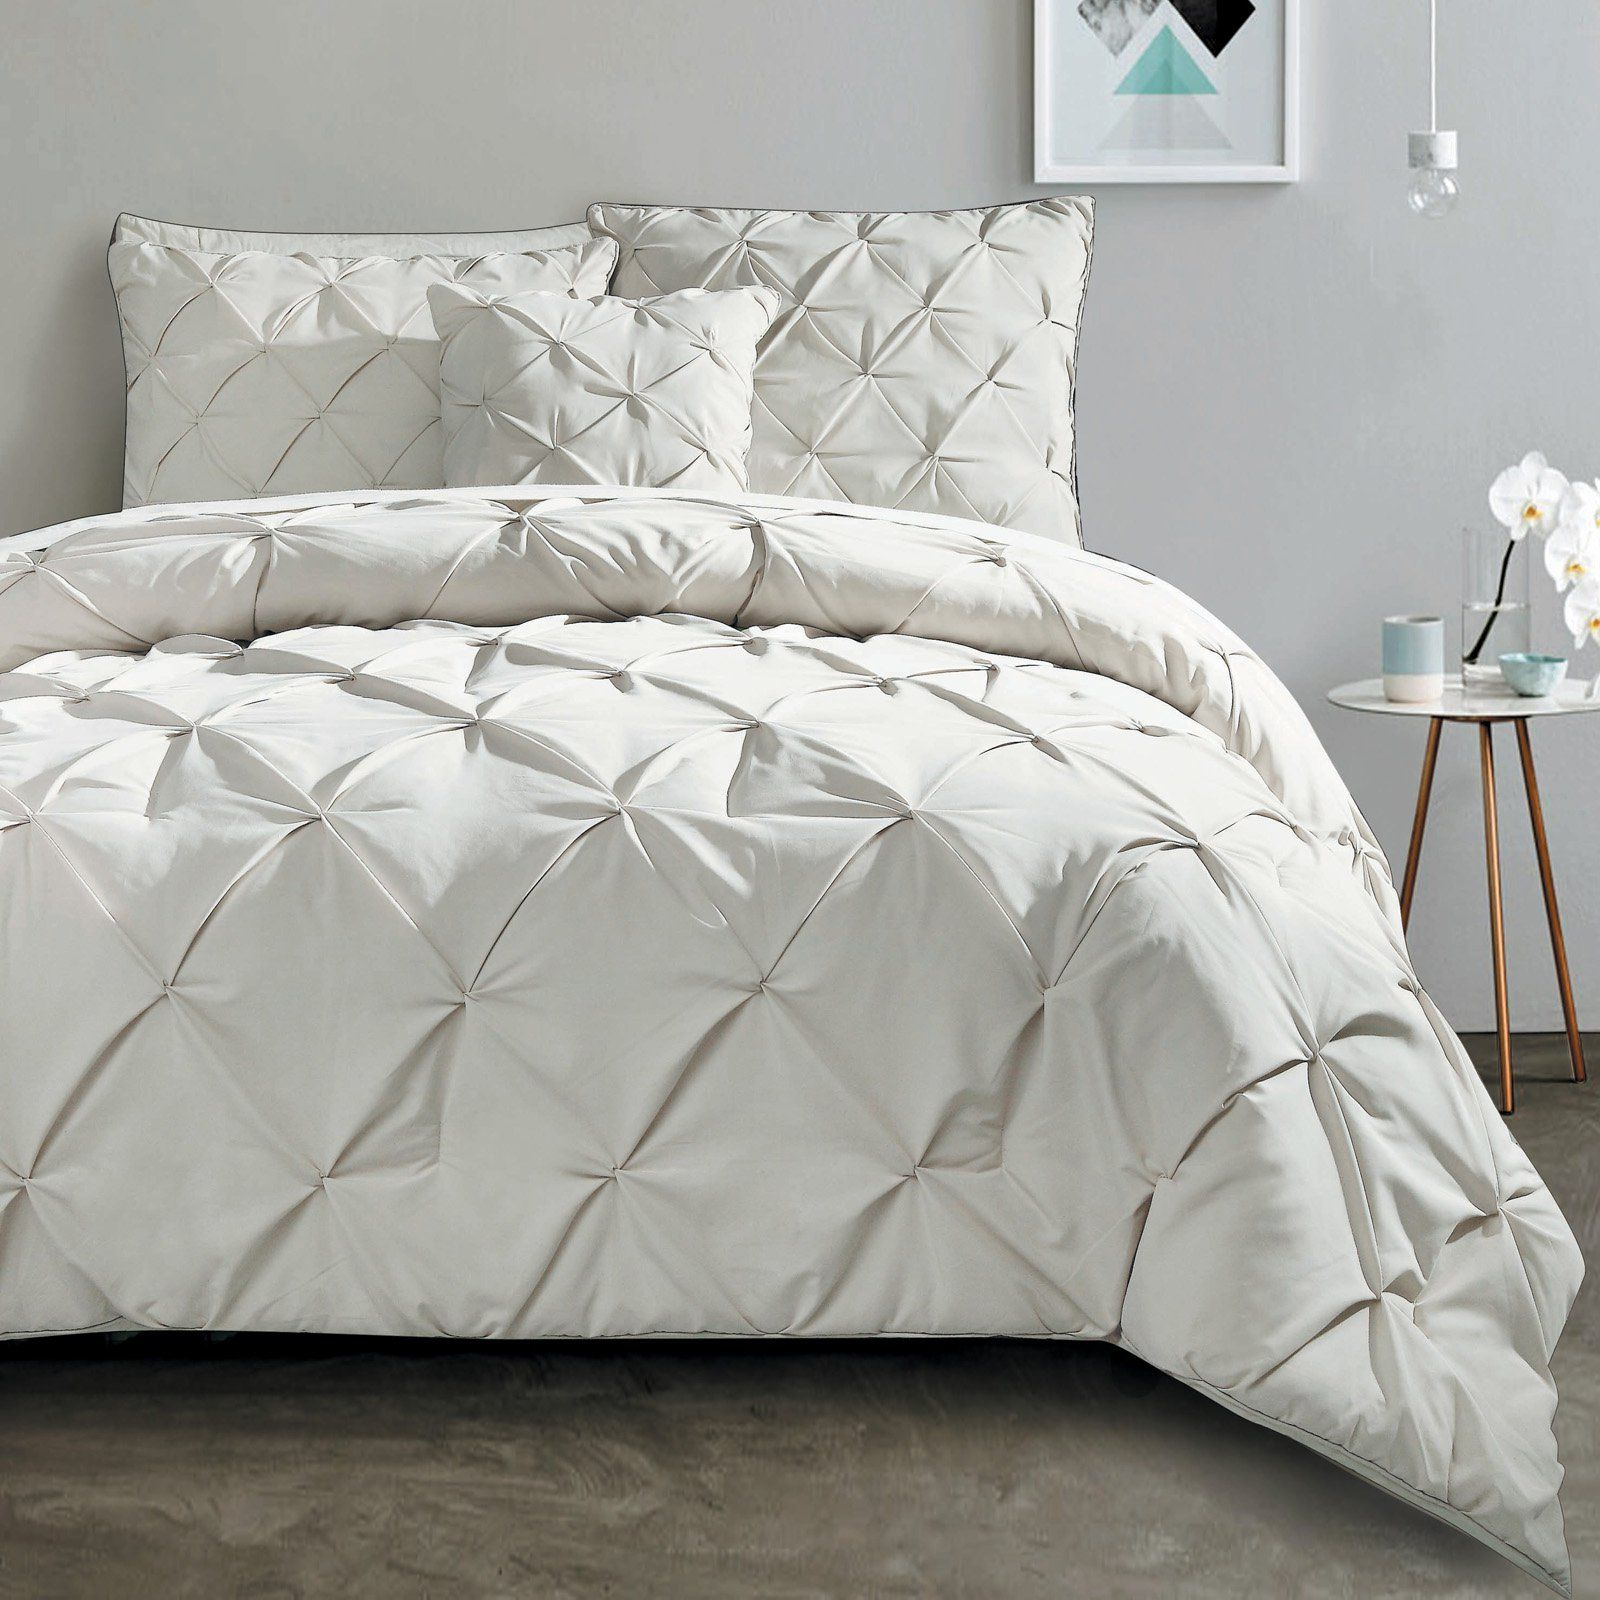 Carmen 4 Piece Comforter Set by VCNY Taupe Comforter